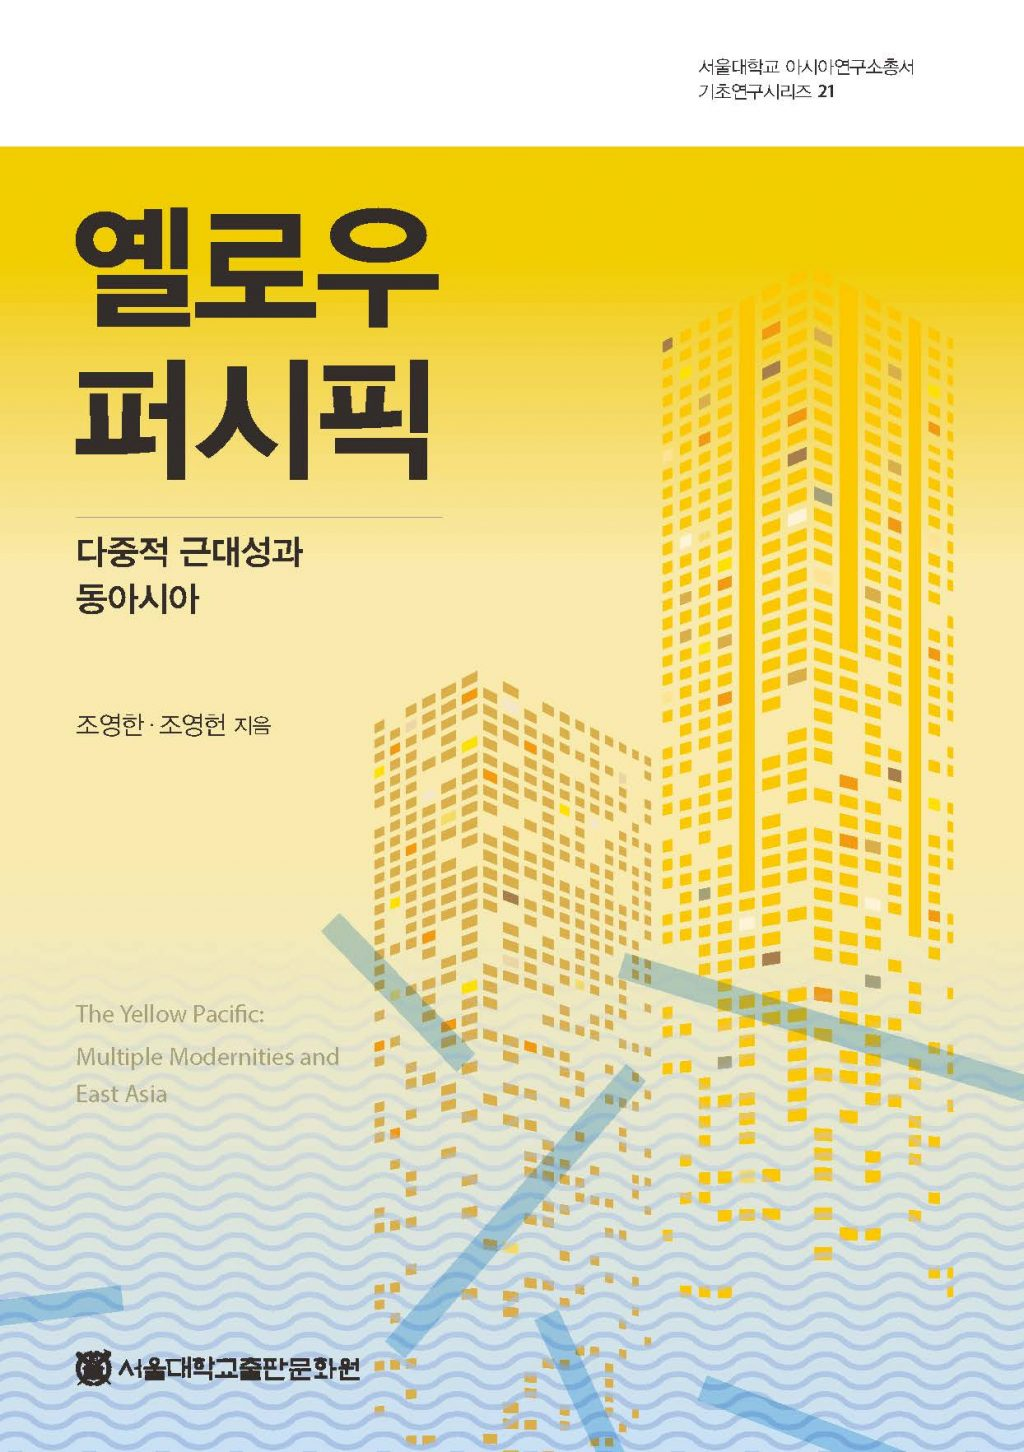 The Yellow Pacific: Multiple Modernities and East Asia